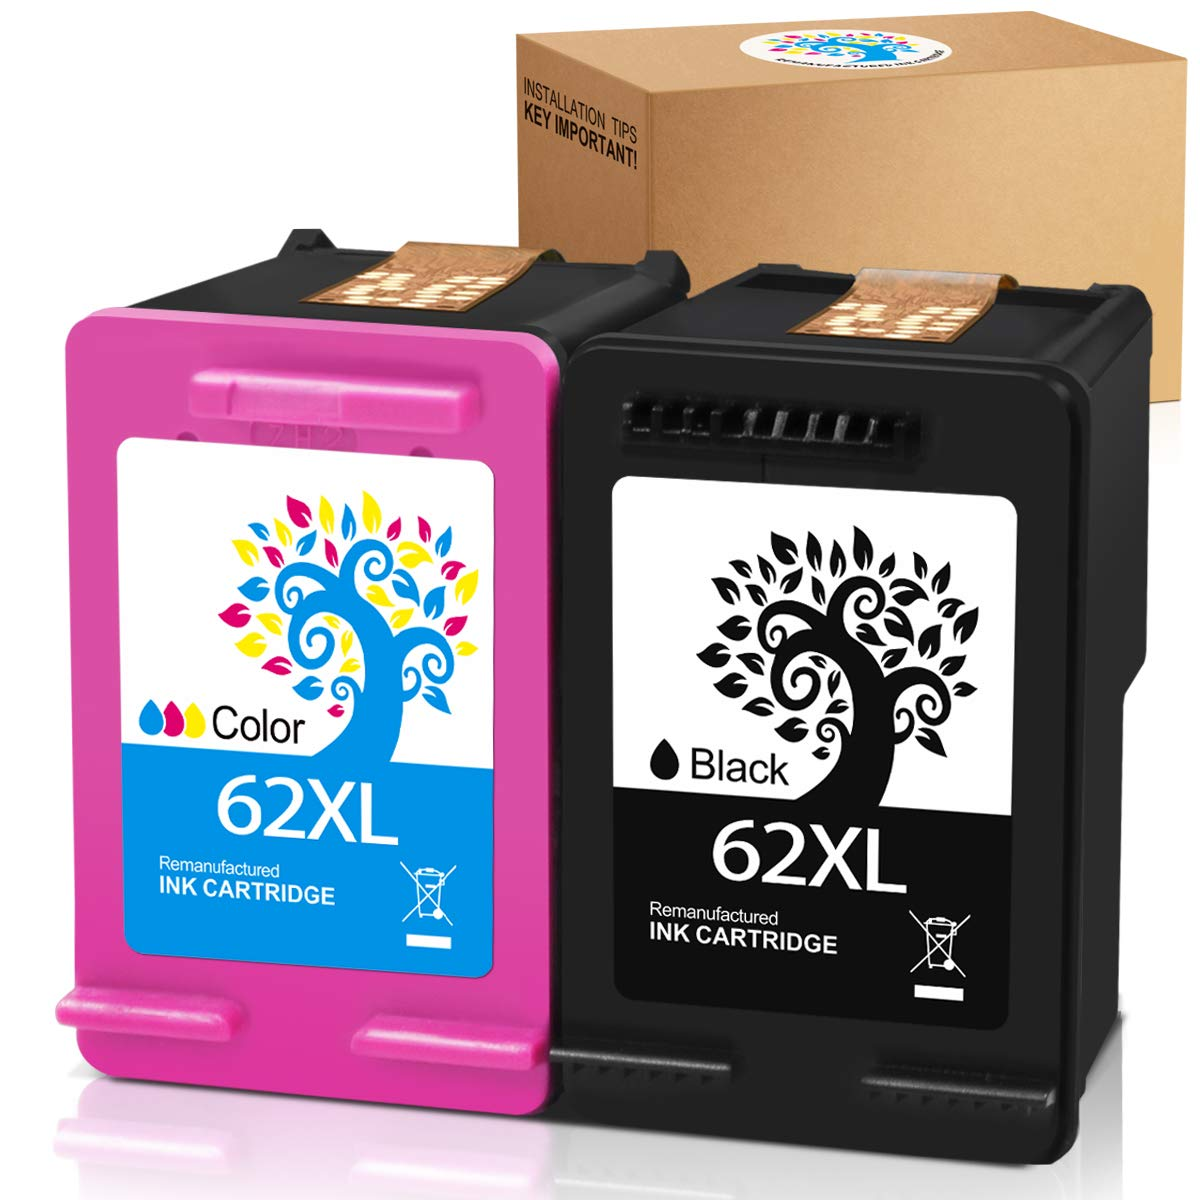 H&BO TOPMAE Remanufactured Ink Cartridge Replacement for HP 62 XL 62XL use with HP Envy 5640 5540 5660 7645 7644 Officejet 5740 8040 OfficeJet 200 250 Mobile Printer, Combo Pack (1 Black 1 Tri-Color)